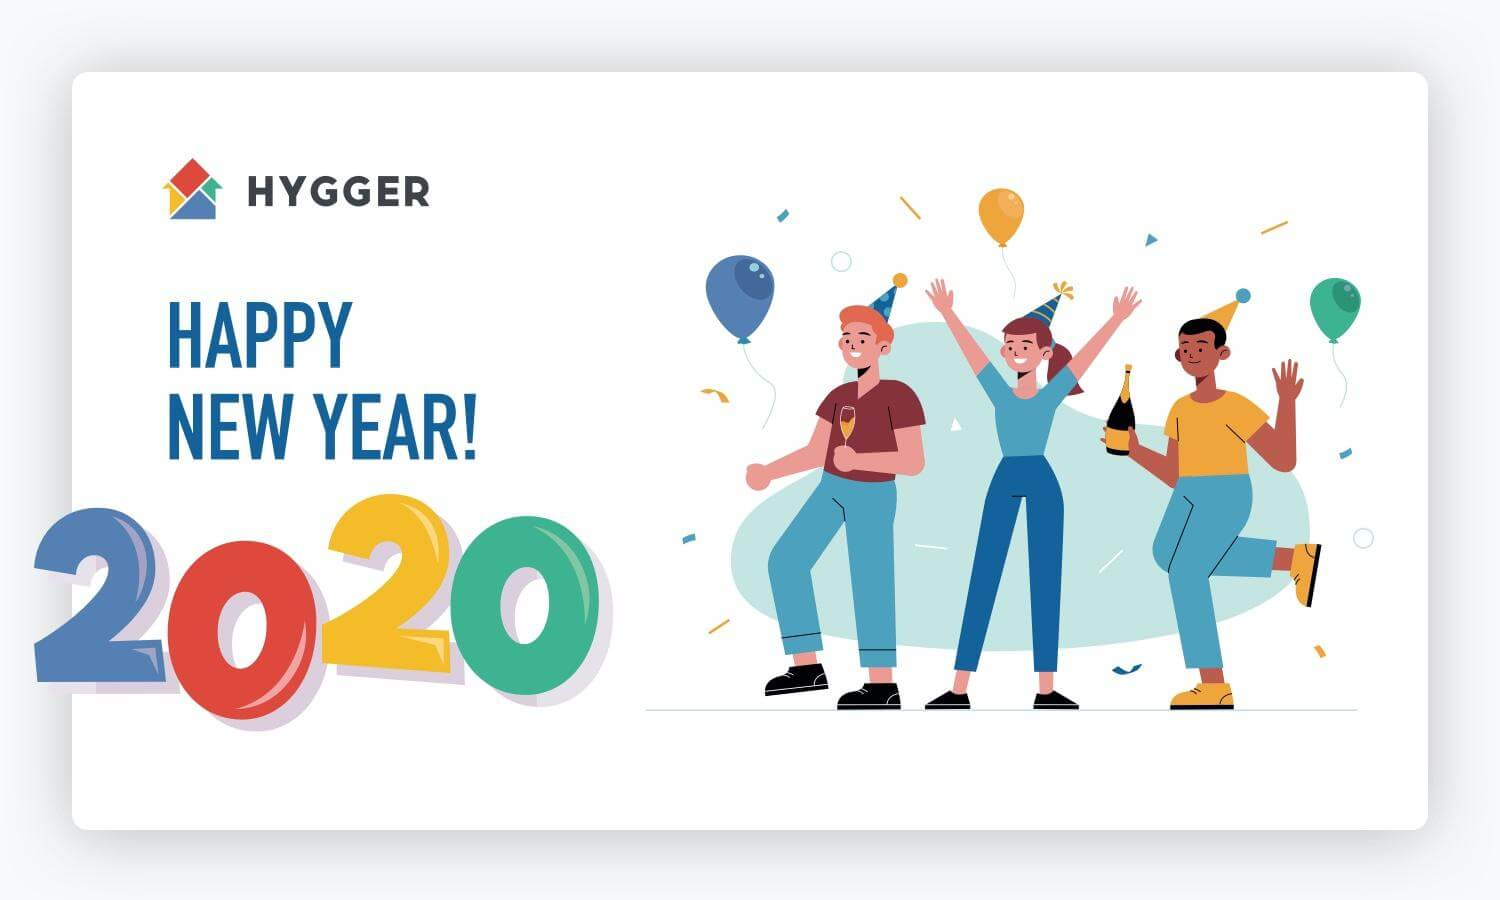 Hygger's 2019 Year in Review